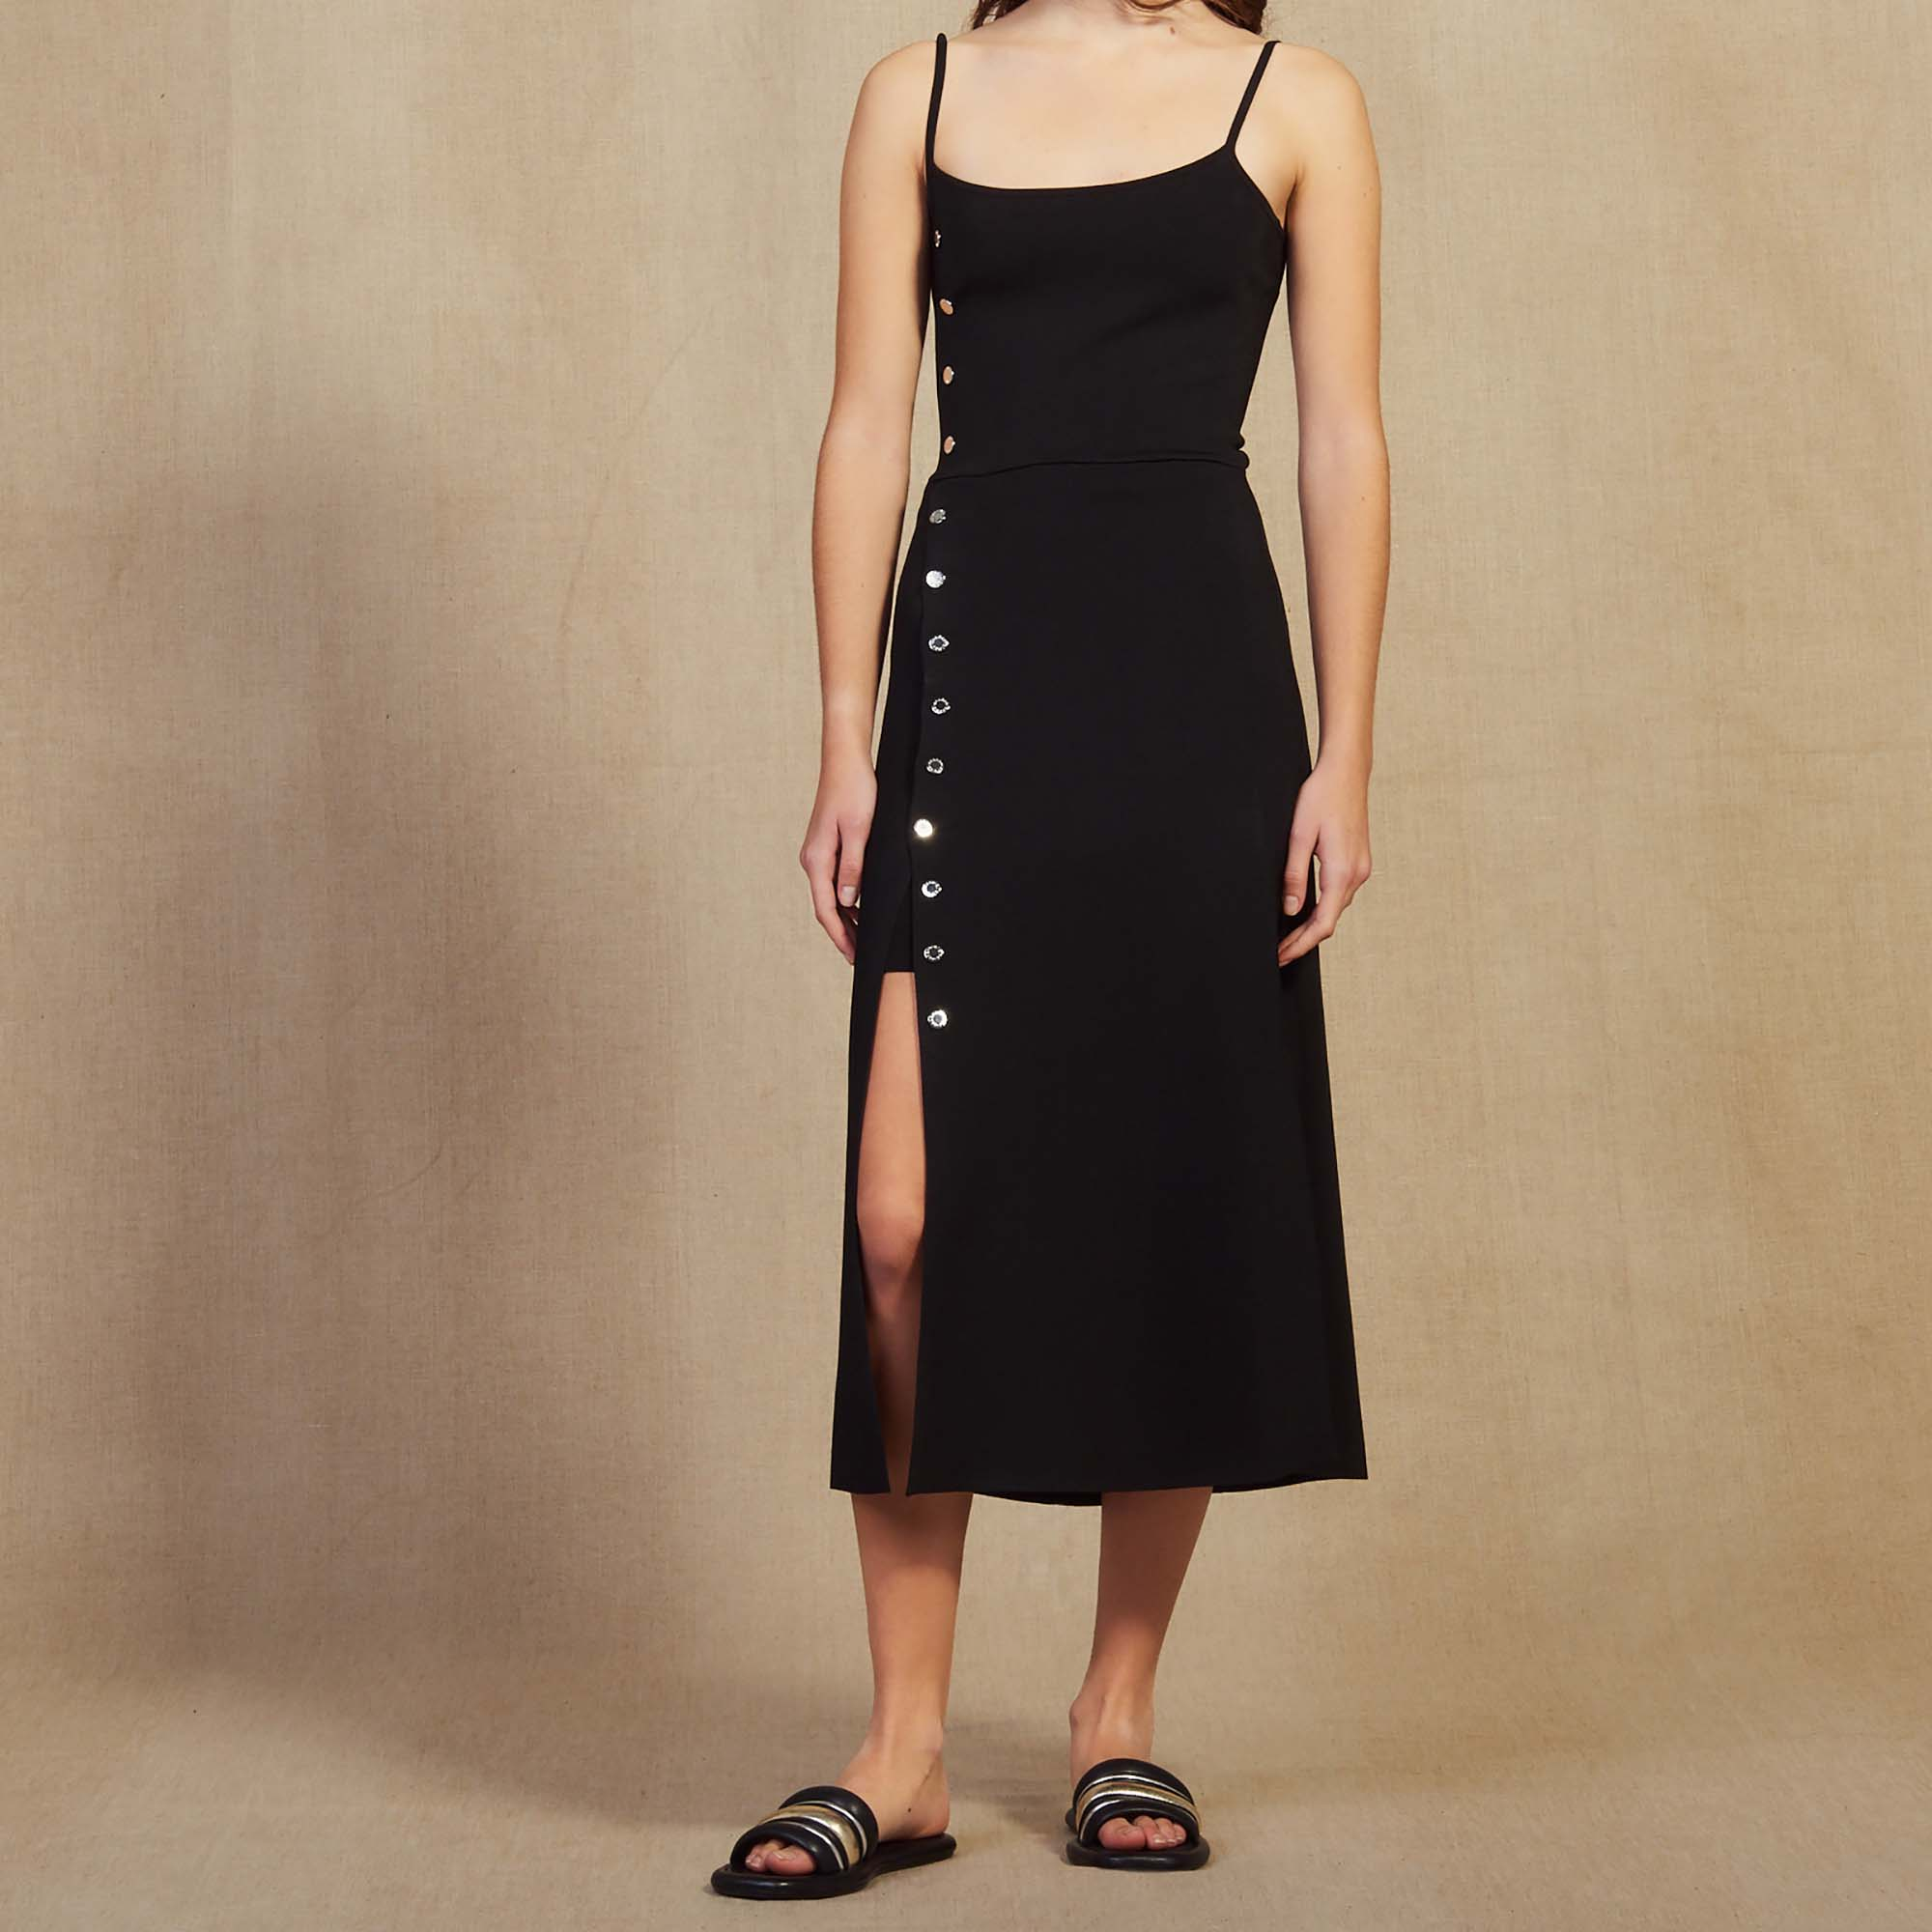 b0395ede22e95d Knitted Midi Dress With Narrow Straps : Dresses color Black ...